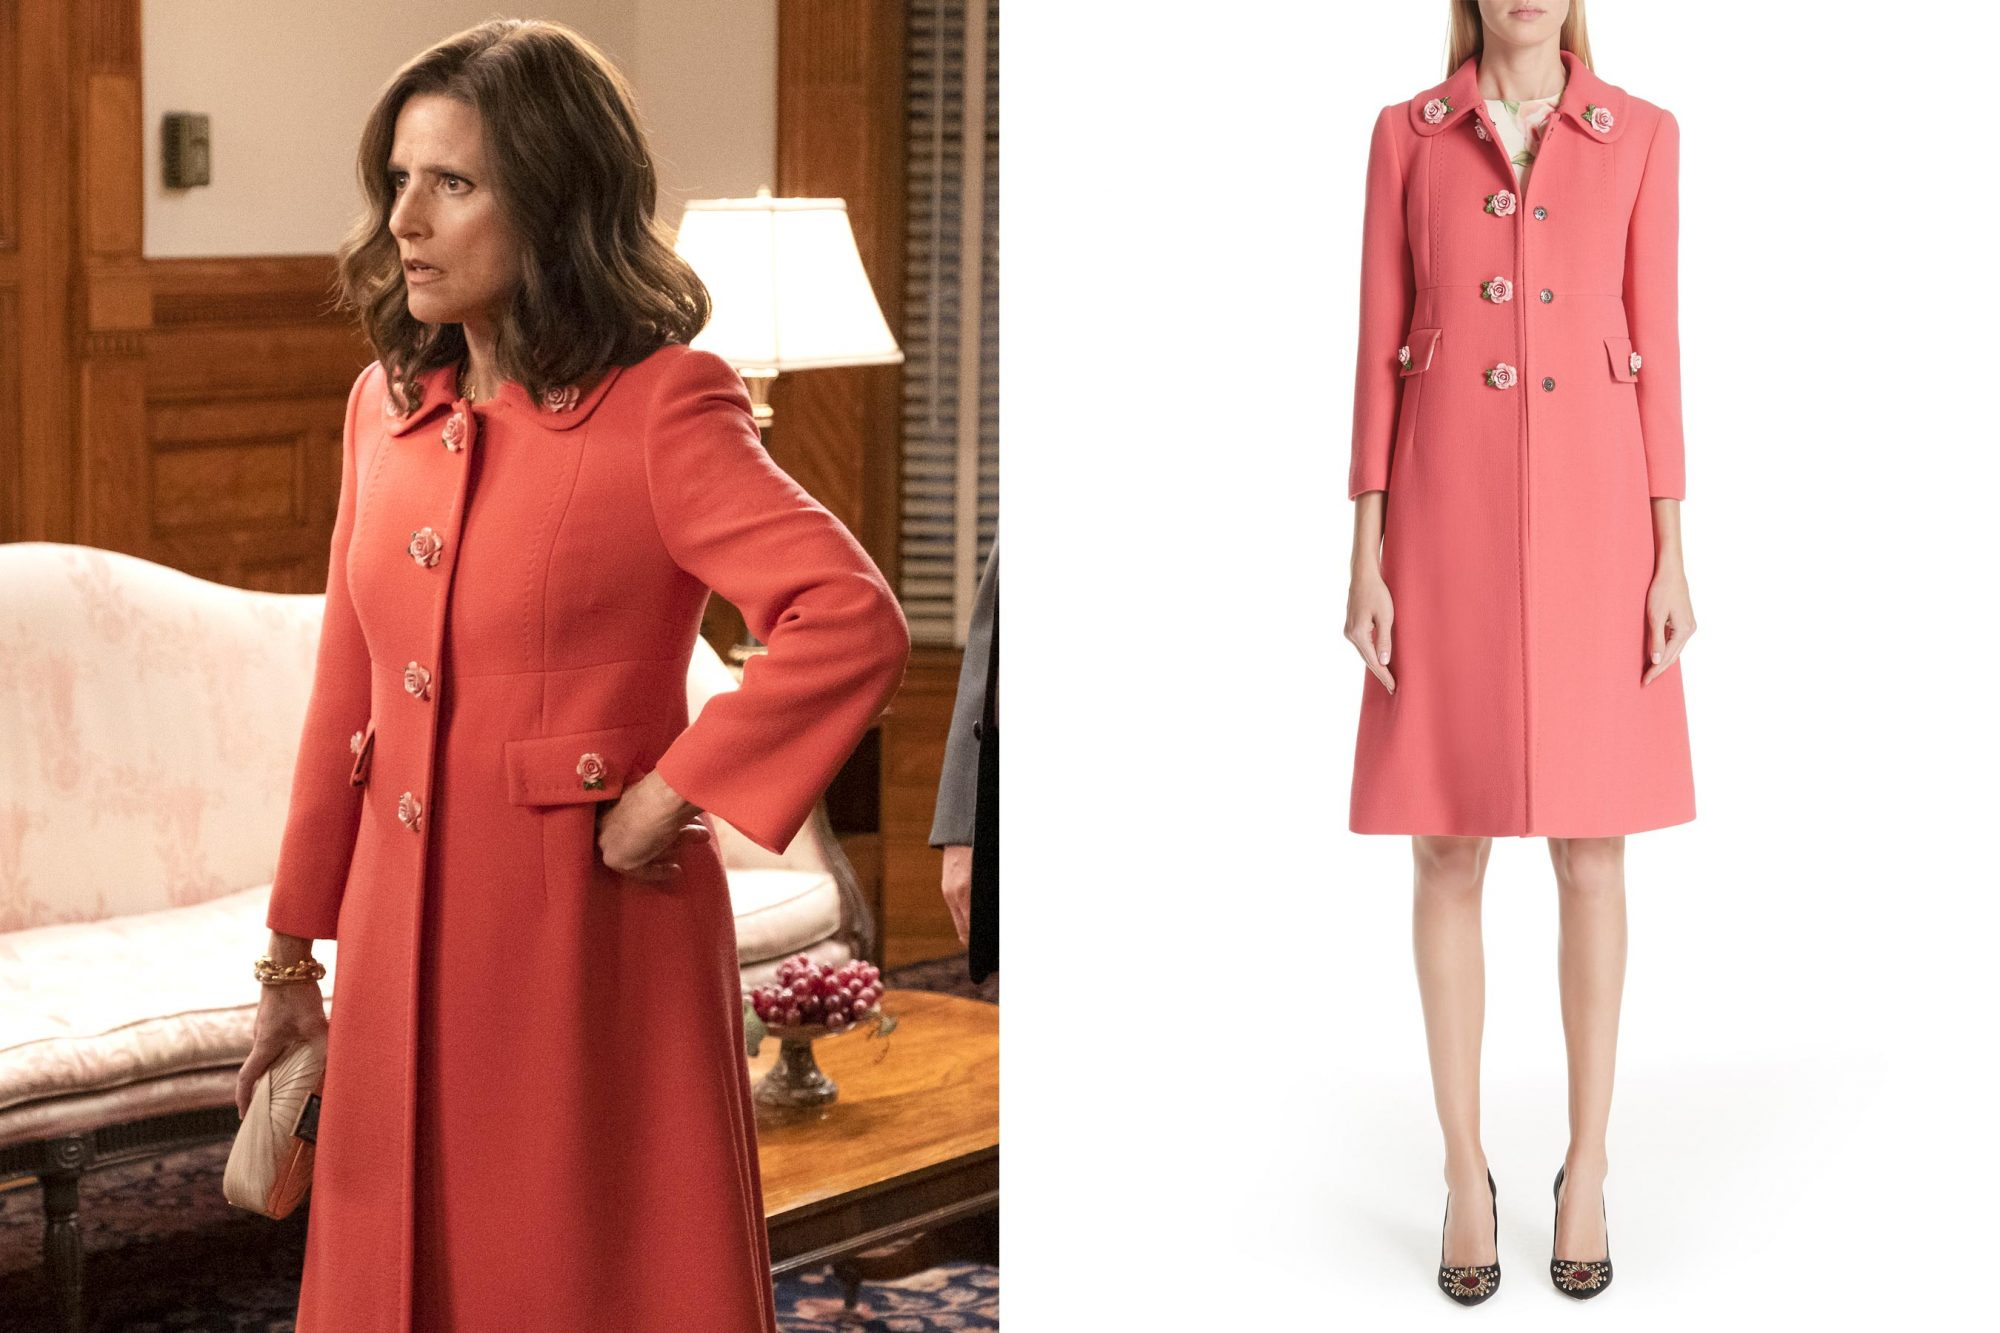 VEEP Season 7, episode 6 (debut 5/5/19): Tony Hale, Julia Louis-Dreyfus, Kevin Dunn, Gary Cole. photo: Colleen Hayes/HBO Rose Button Wool Coat DOLCE&GABBANA https://shop.nordstrom.com/s/dolcegabbana-rose-button-wool-coat/4944552 CR: Nordstrom